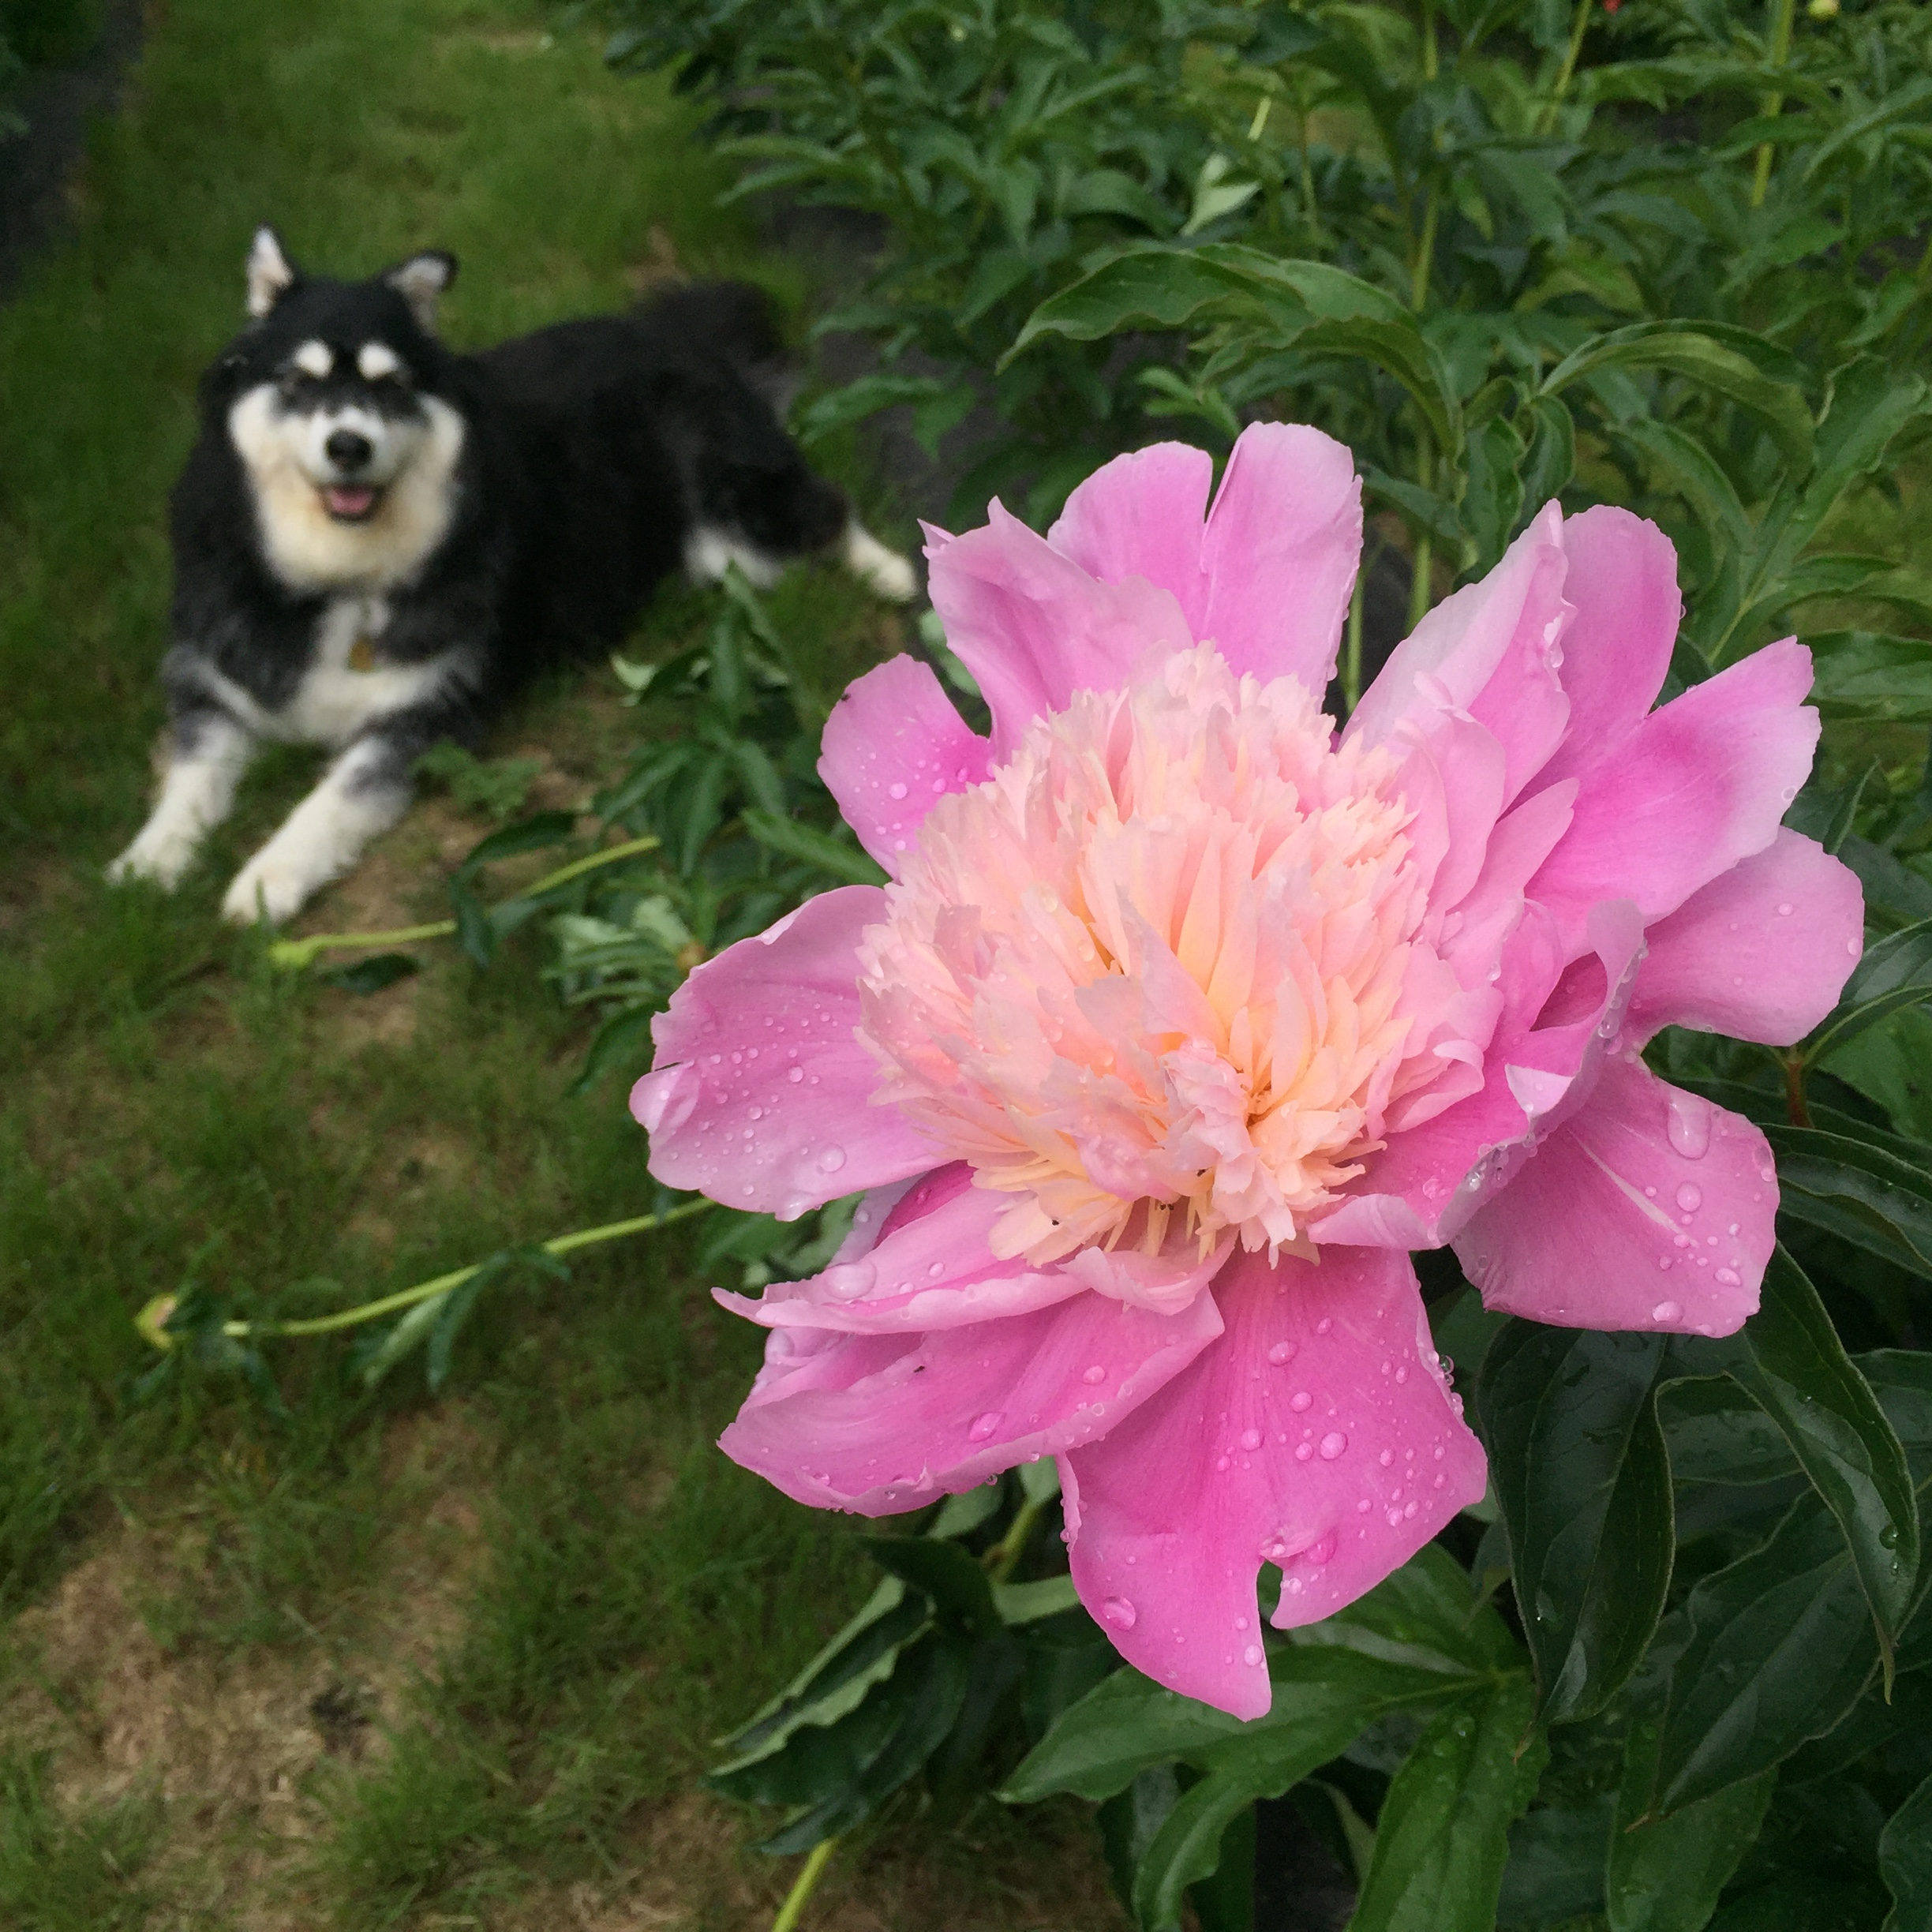 Callie Loves Peonies!